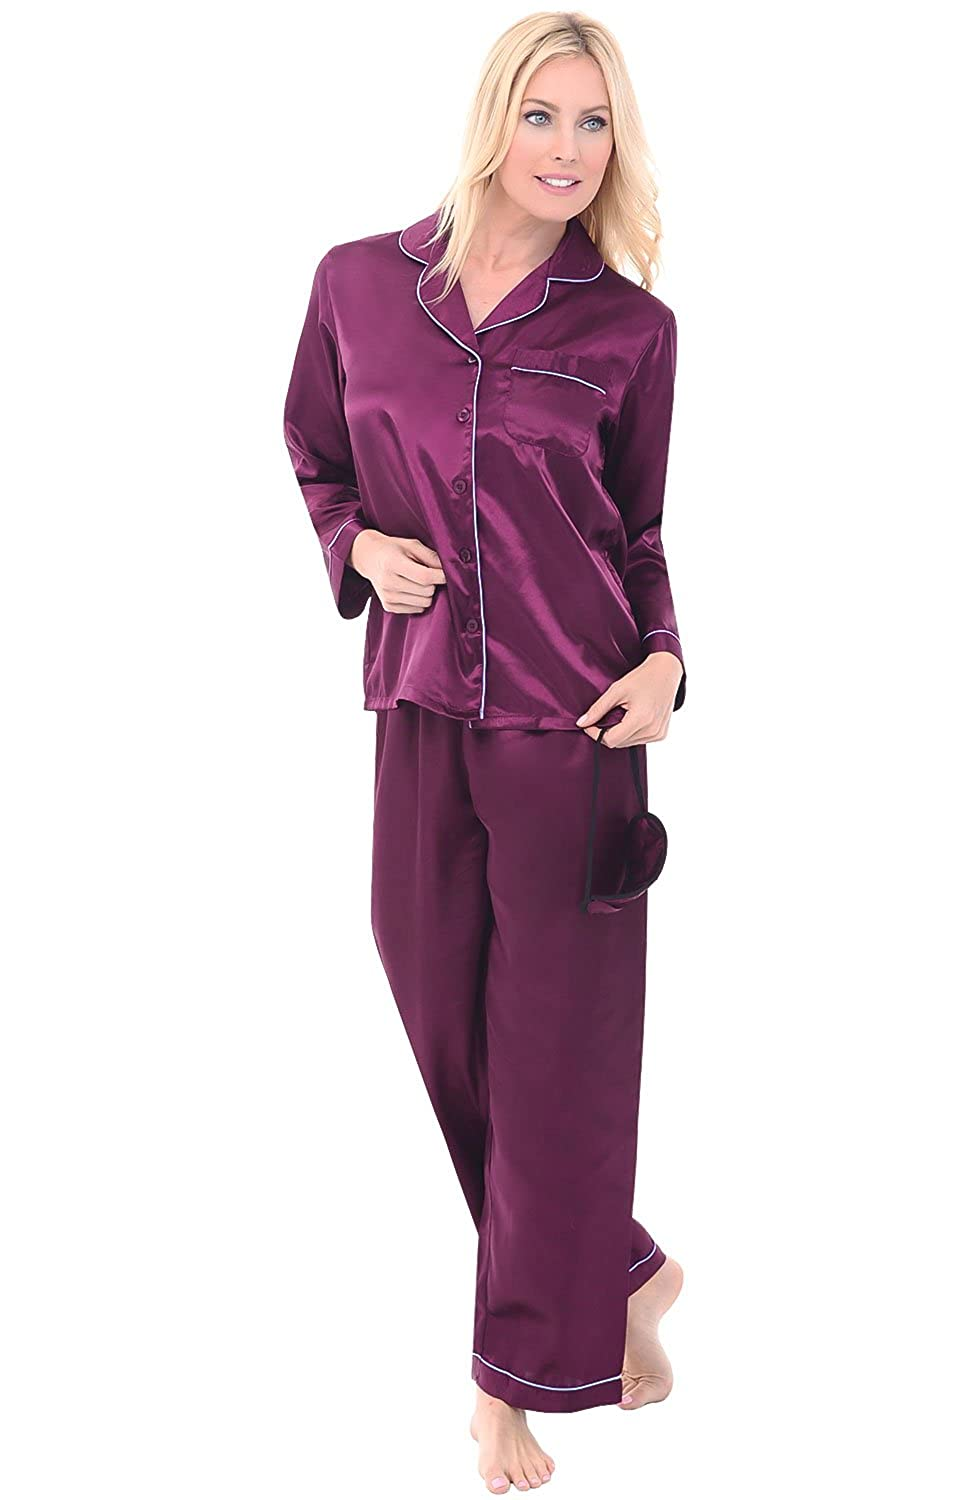 Del Rossa Women's Satin Pajamas, Long Button-Down Pj Set and Mask